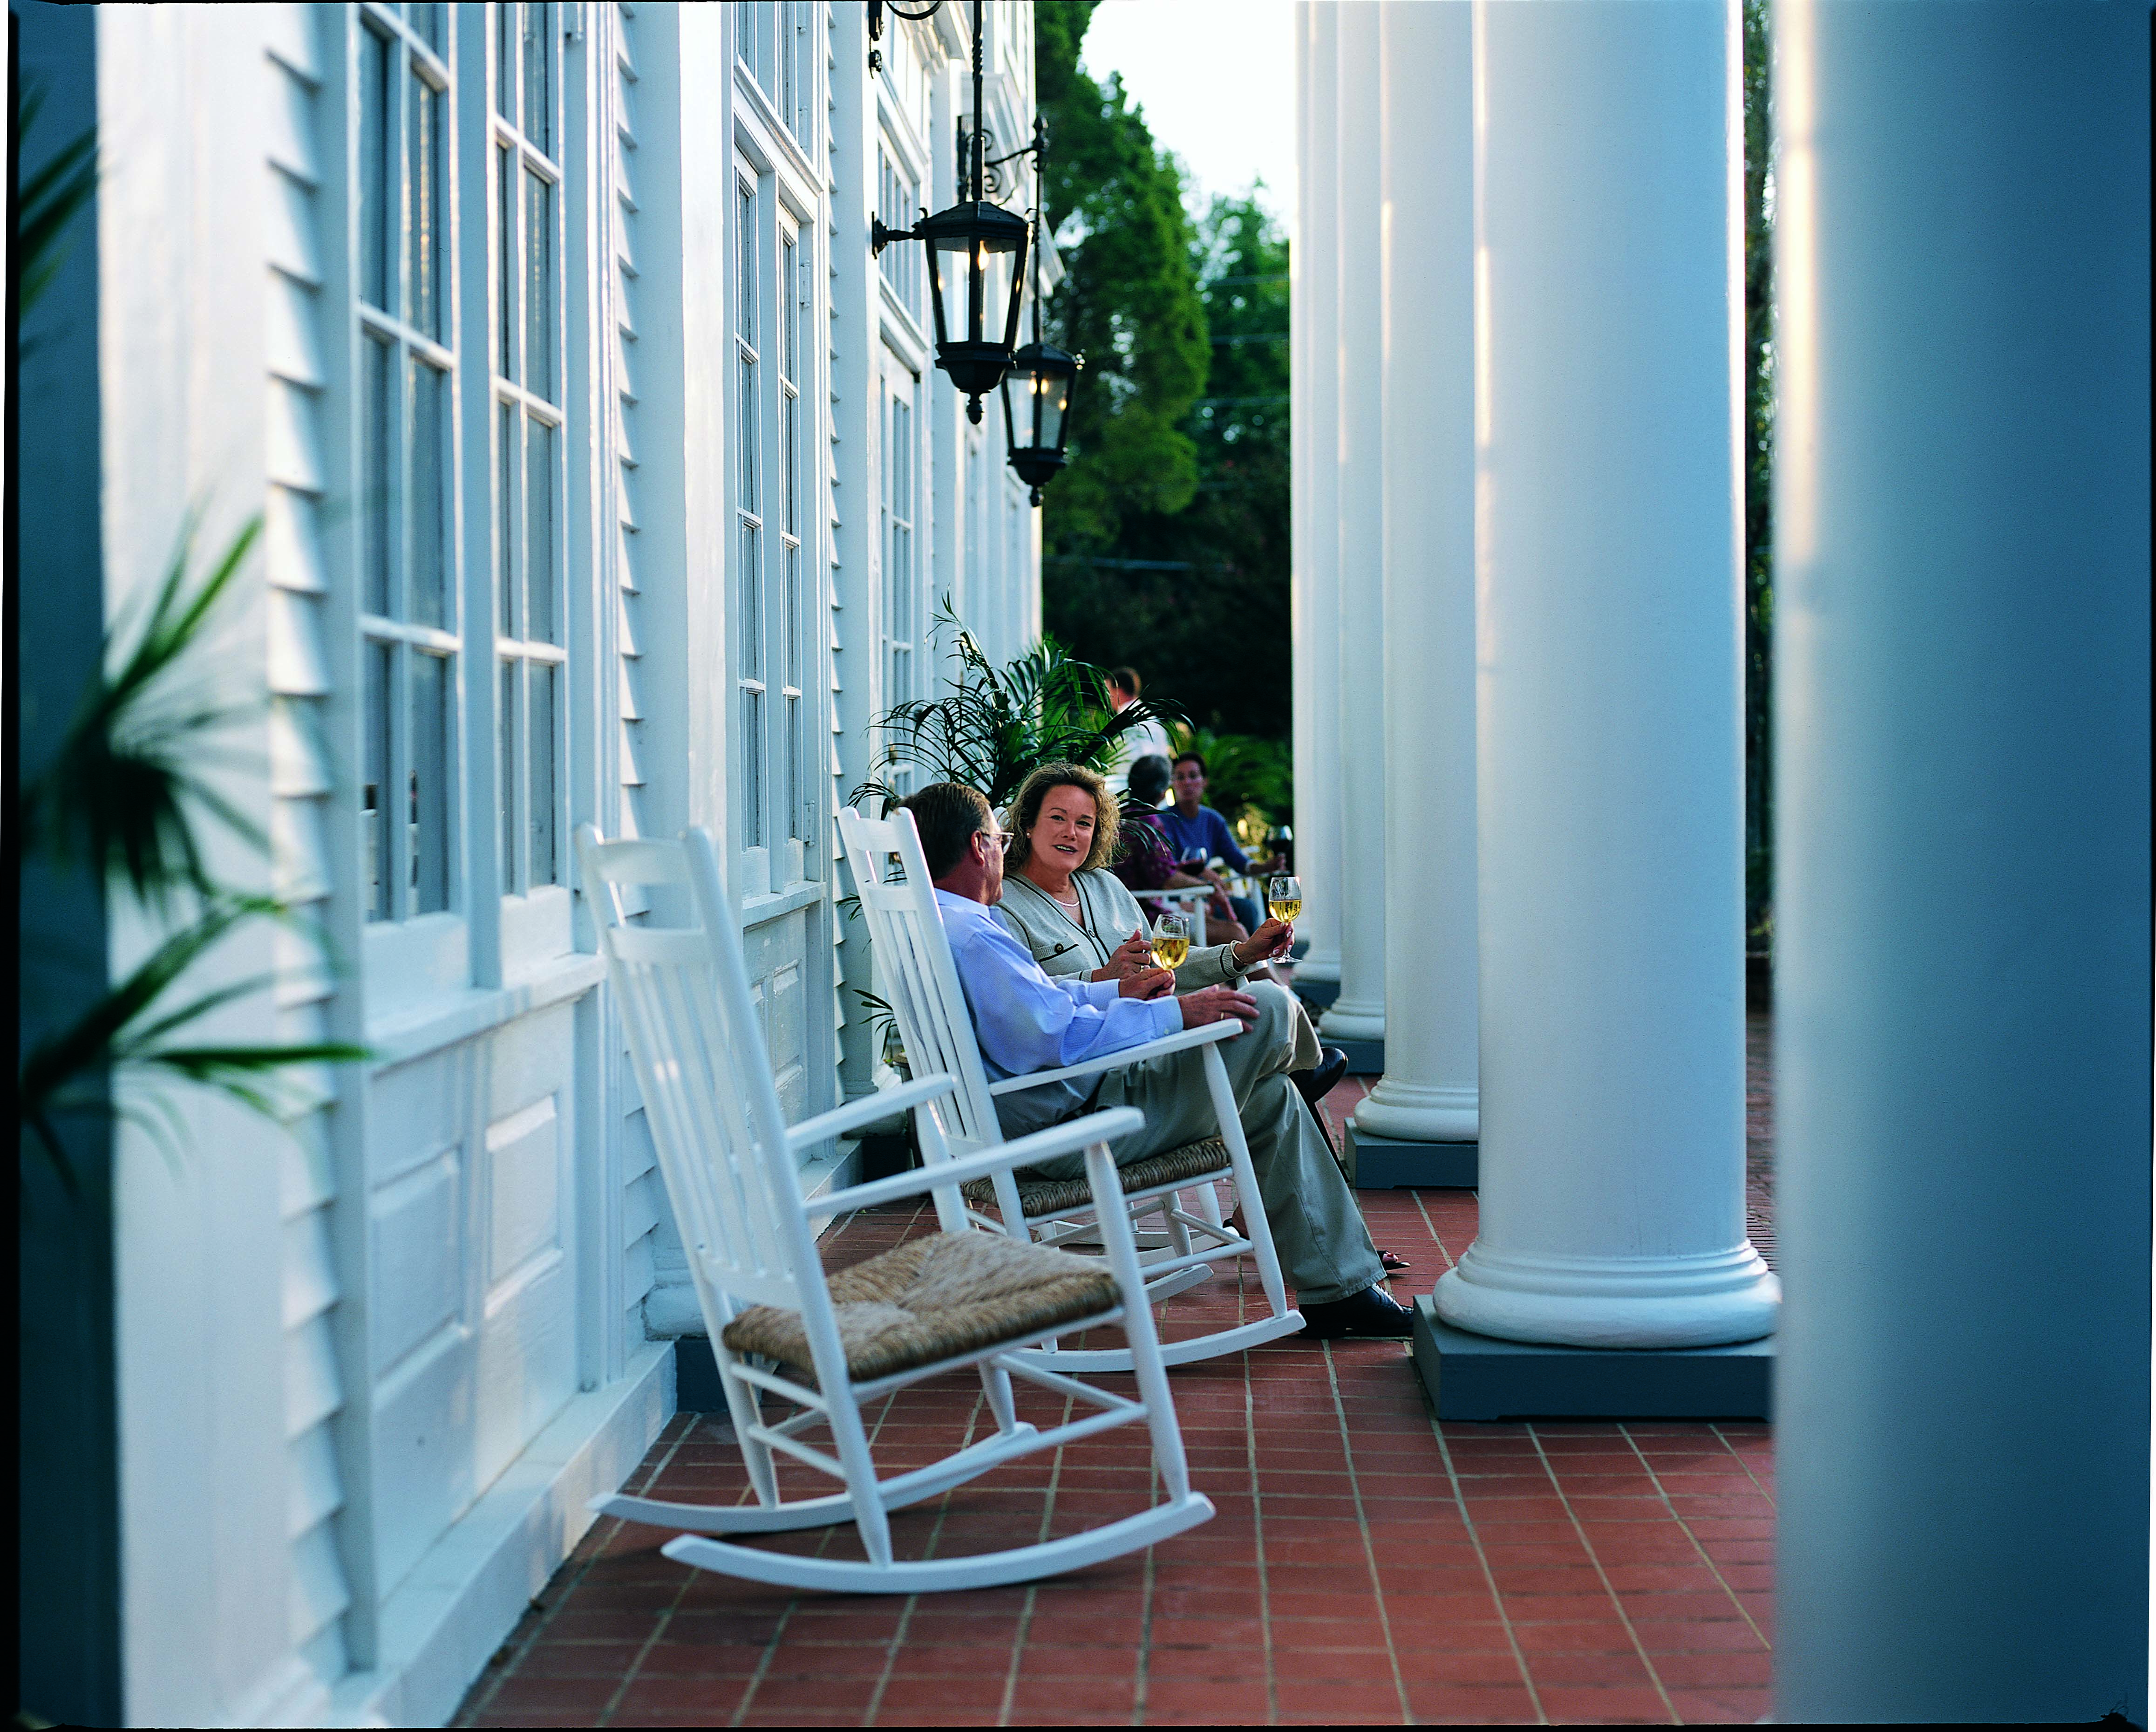 Rocking Chairs On The Front Porch Of The WIllcox Hotel In Aiken, SC